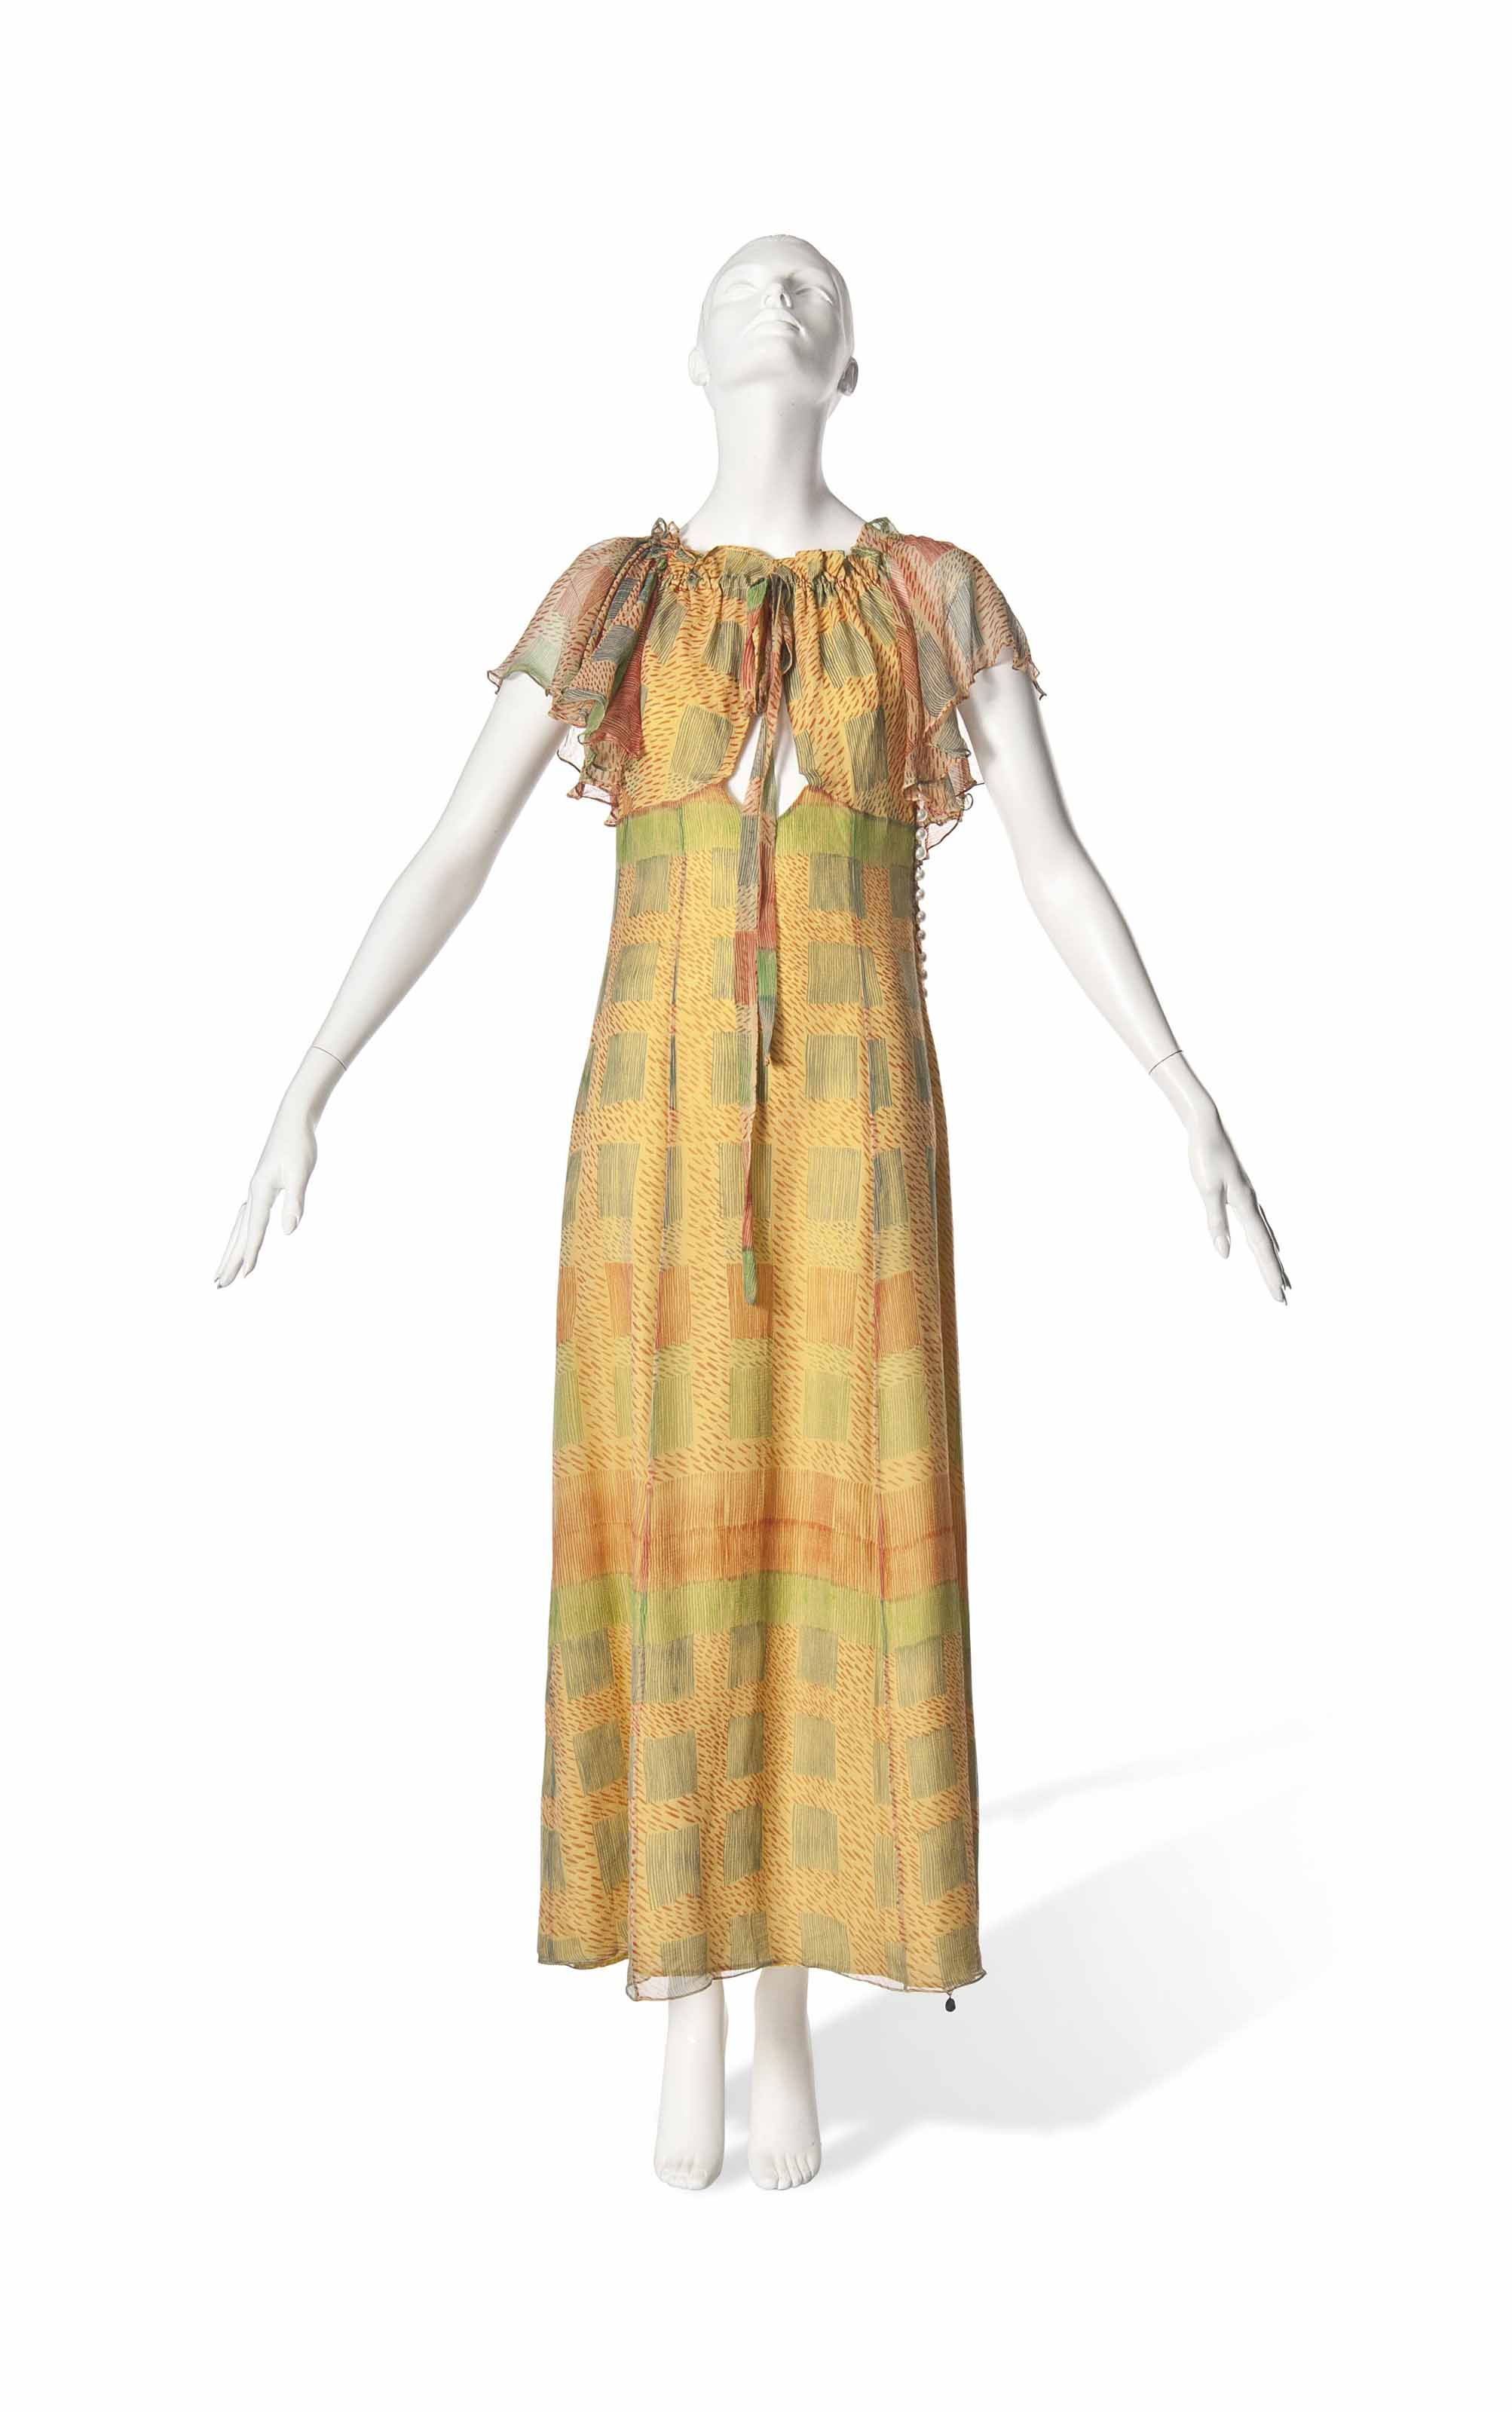 AN OSSIE CLARK AND CELIA BIRTWELL PRINTED CHIFFON, OFF-THE-SHOULDER MAXI DRESS